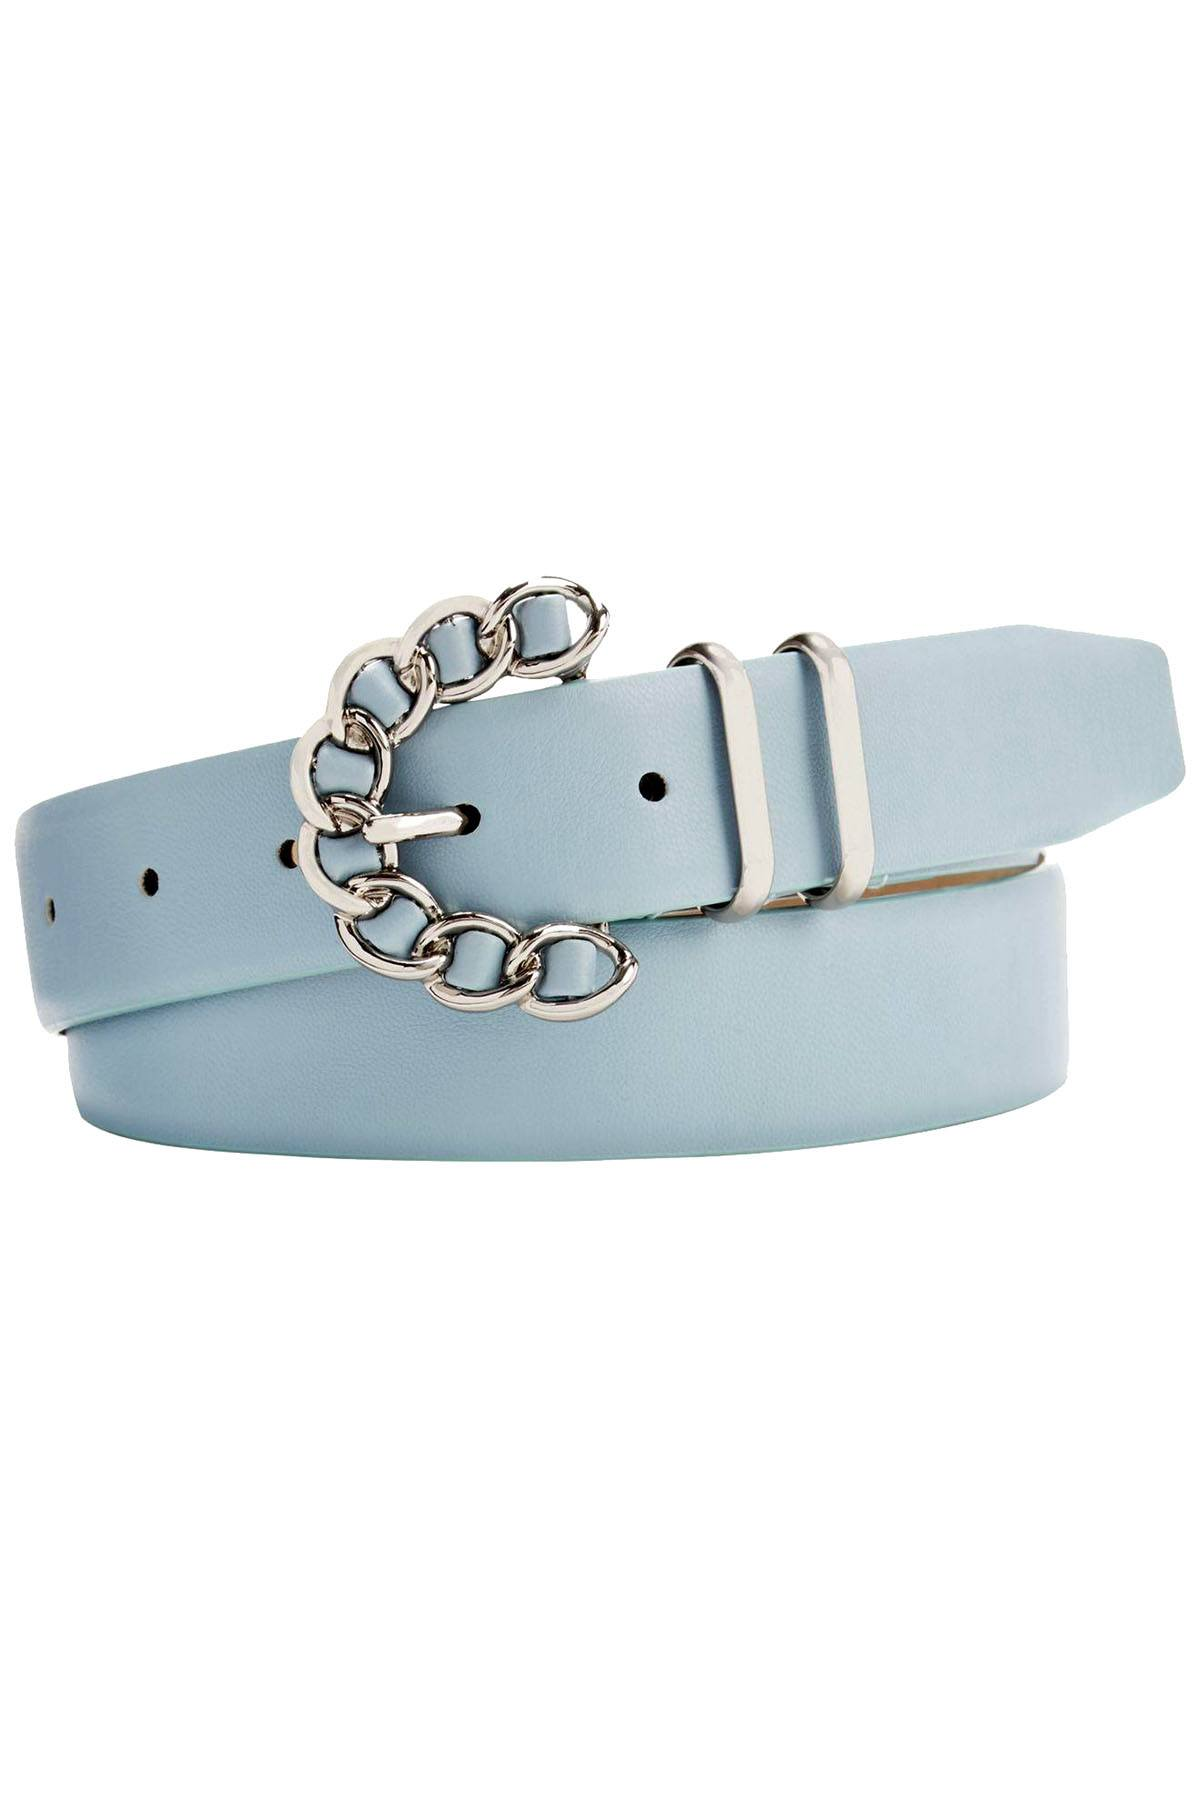 Steve Madden Light Blue Chain Buckle Belt